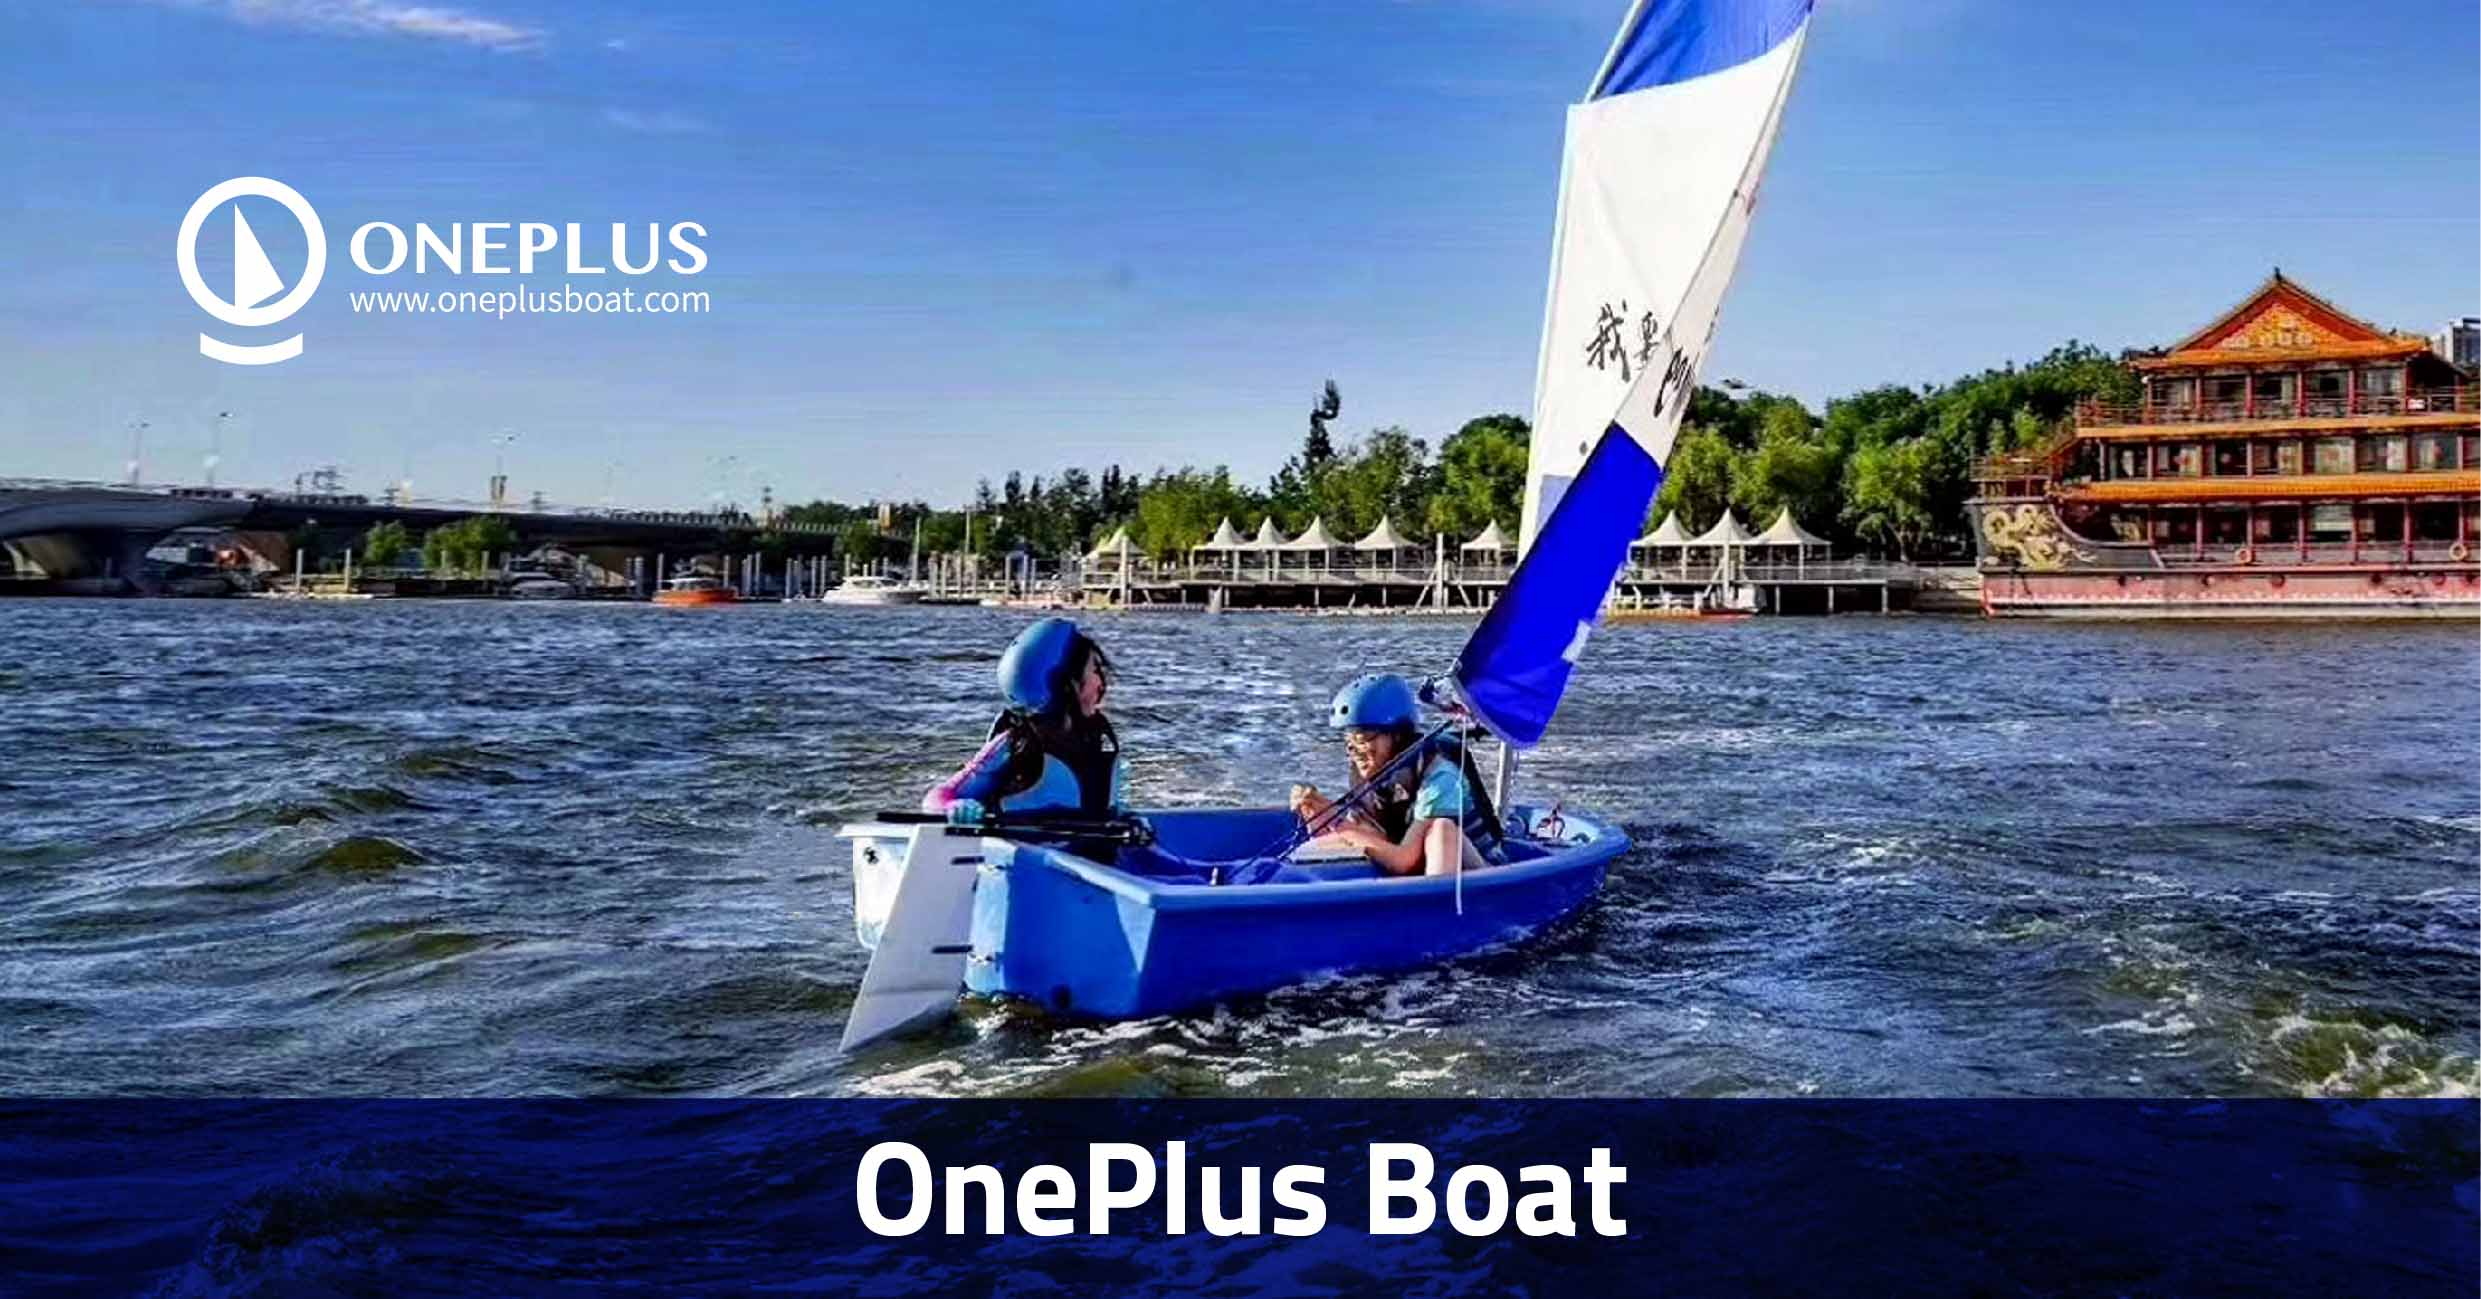 OnePlus Boat